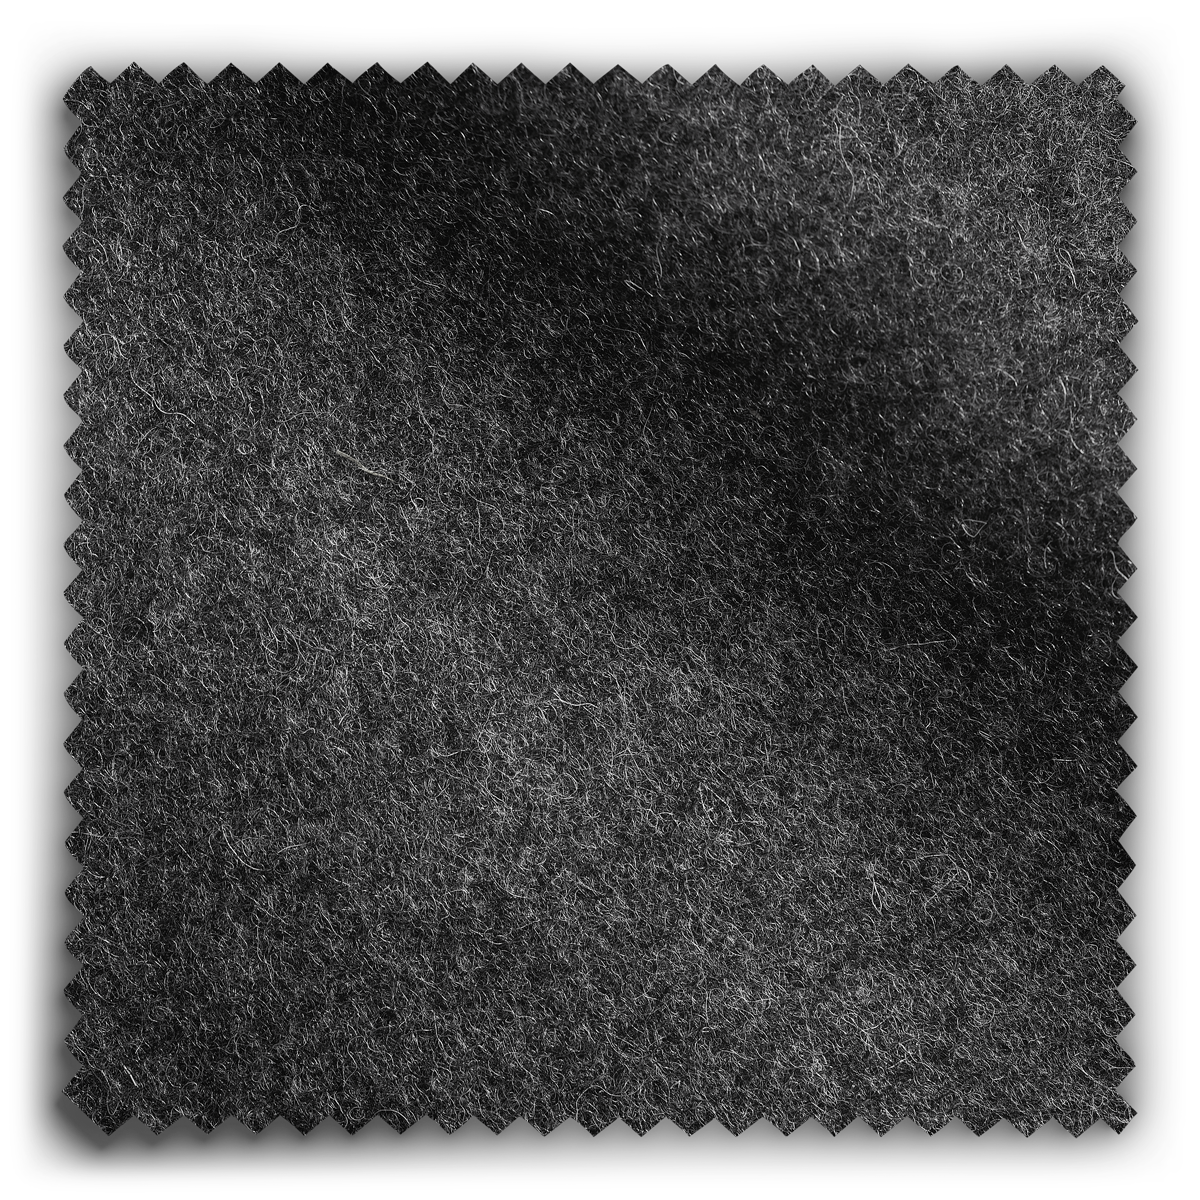 Image of Simply Wool Charcoal fabric